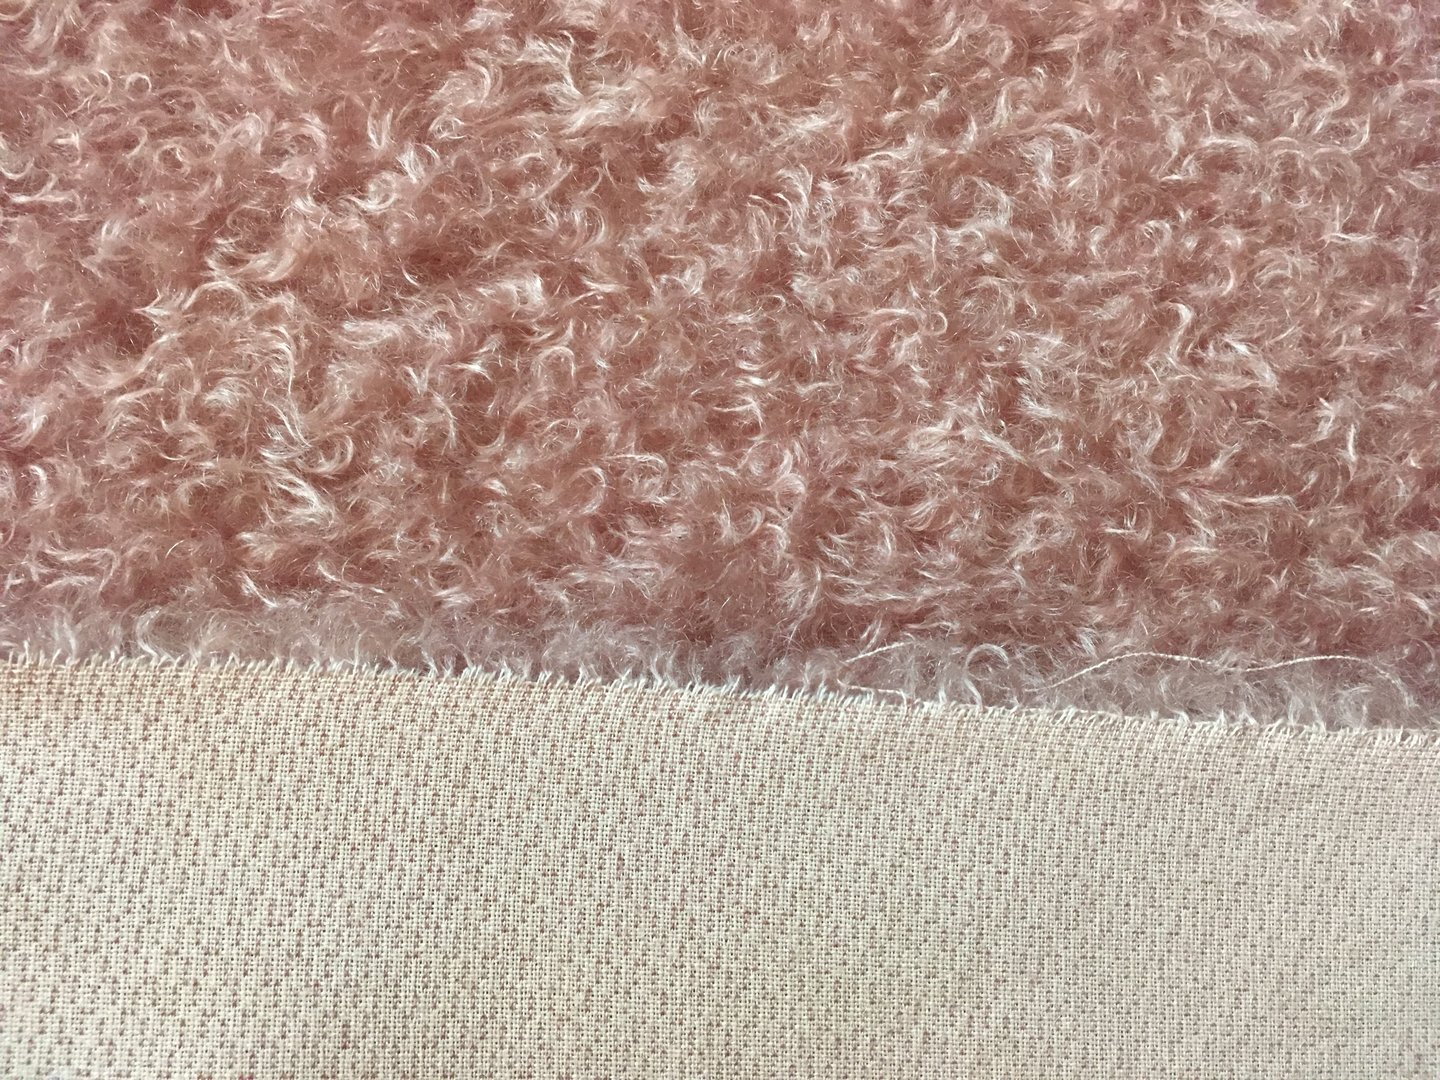 Antik-Art-Mohair ratinee altrosa ±23 mm